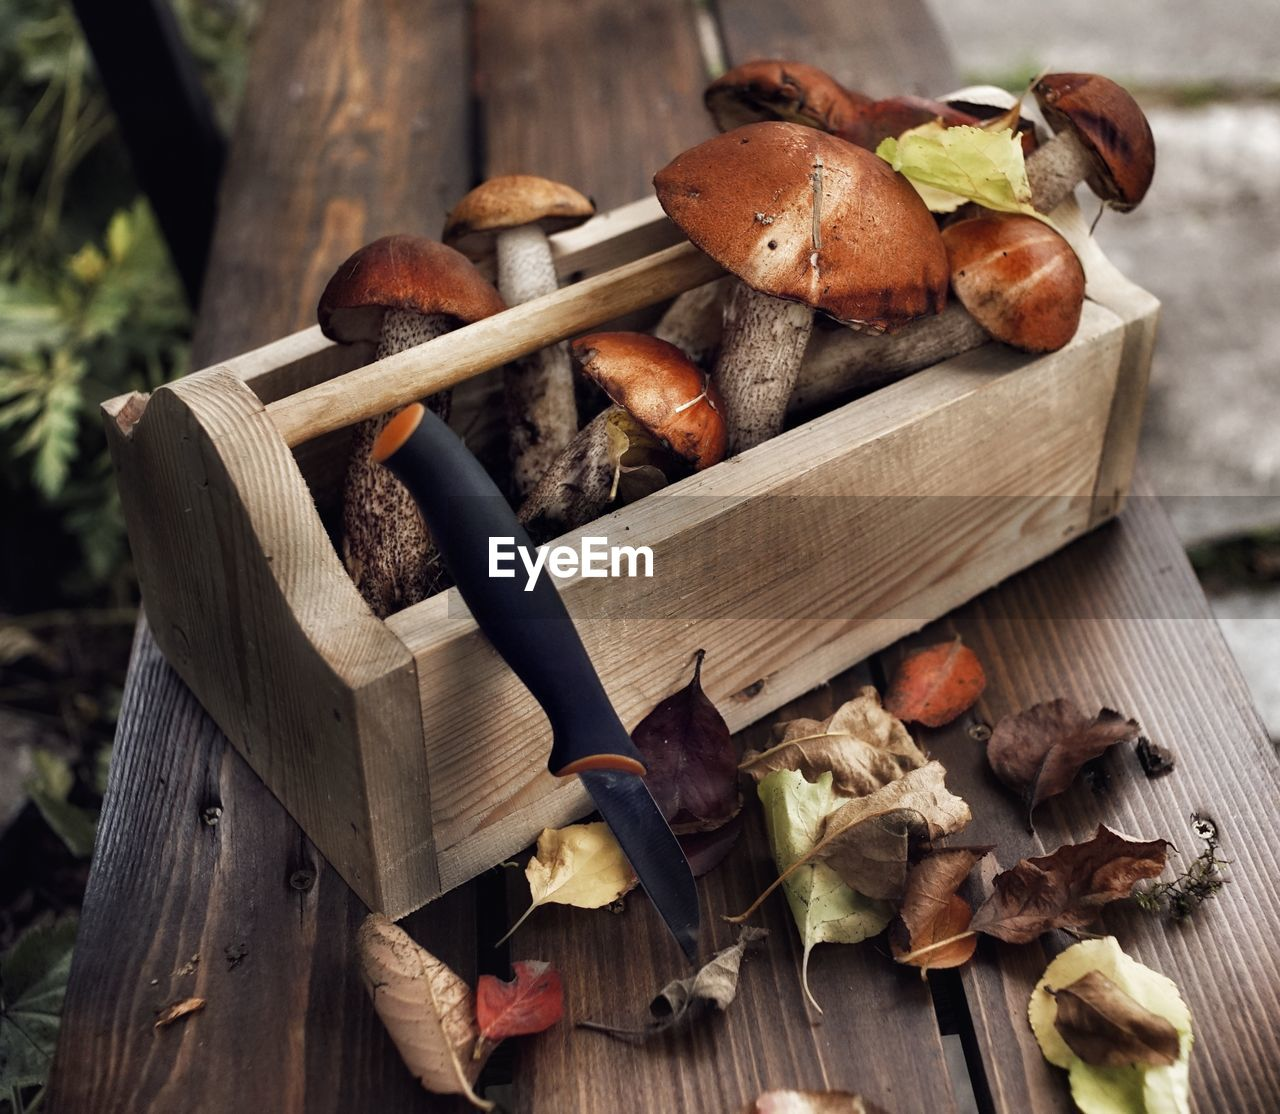 High Angle View Of Mushrooms In Wooden Container On Table